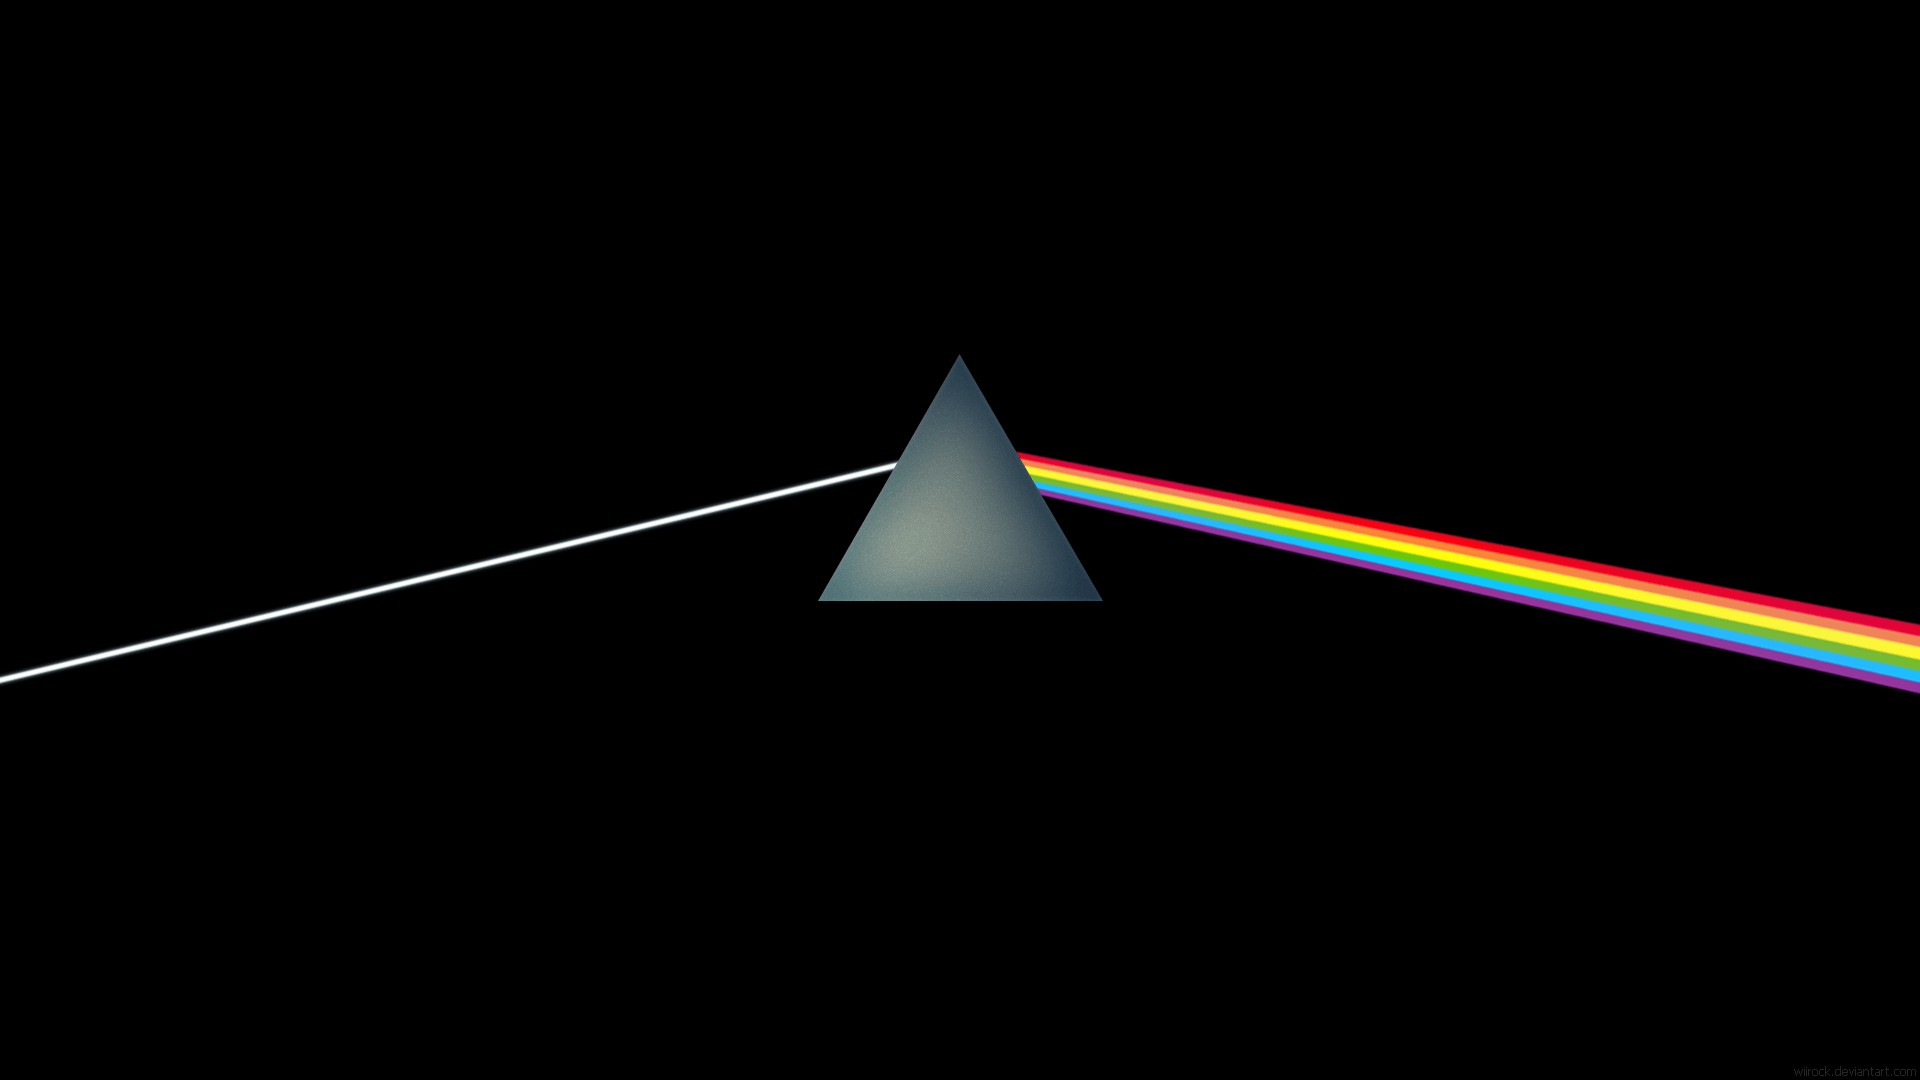 The Dark Side Of The Moon Wallpapers 1920x1080